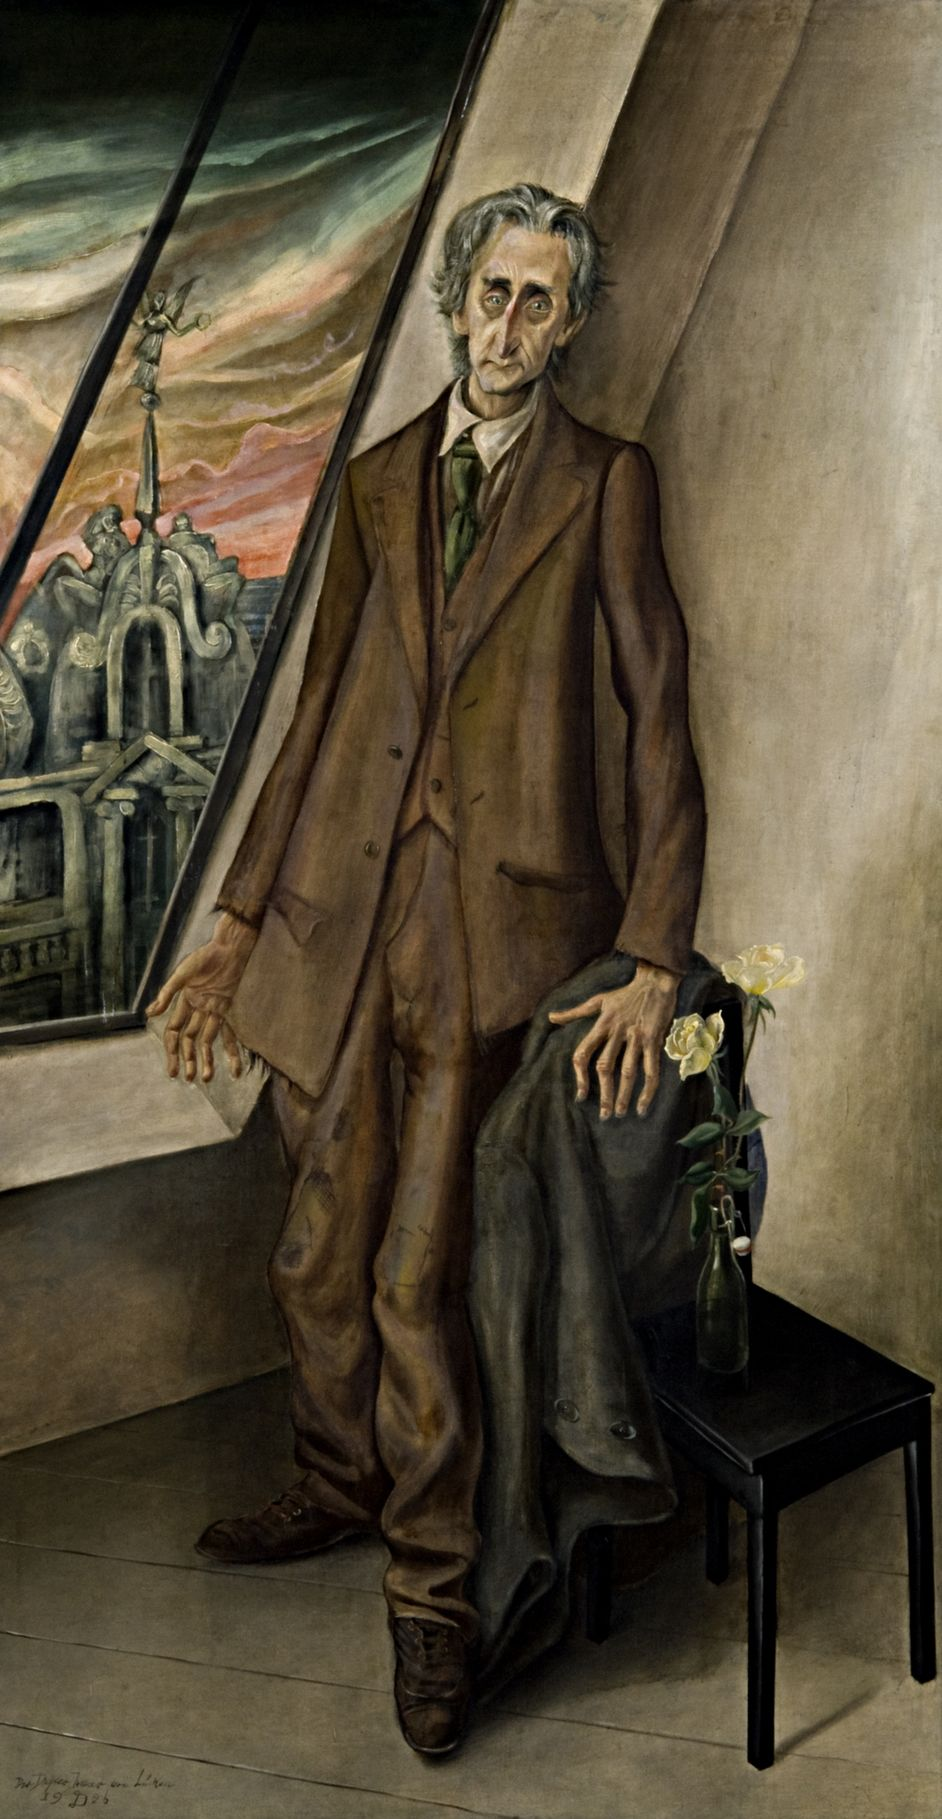 Painting by the painter Otto Dix from 1926